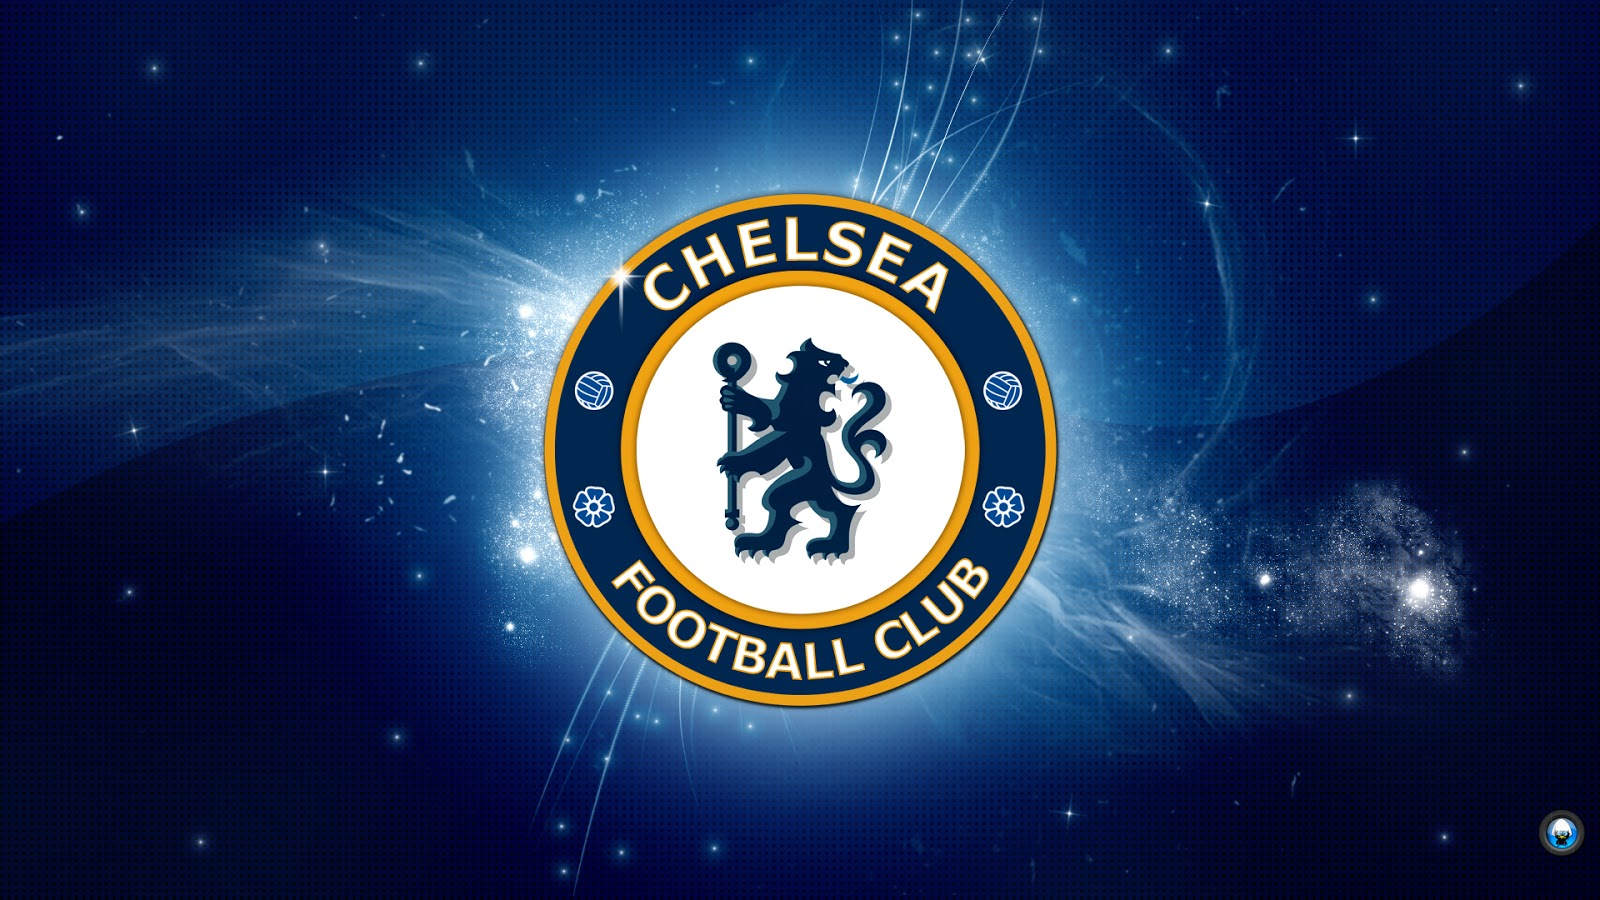 Chelsea FC 2013 Wallpapers HD